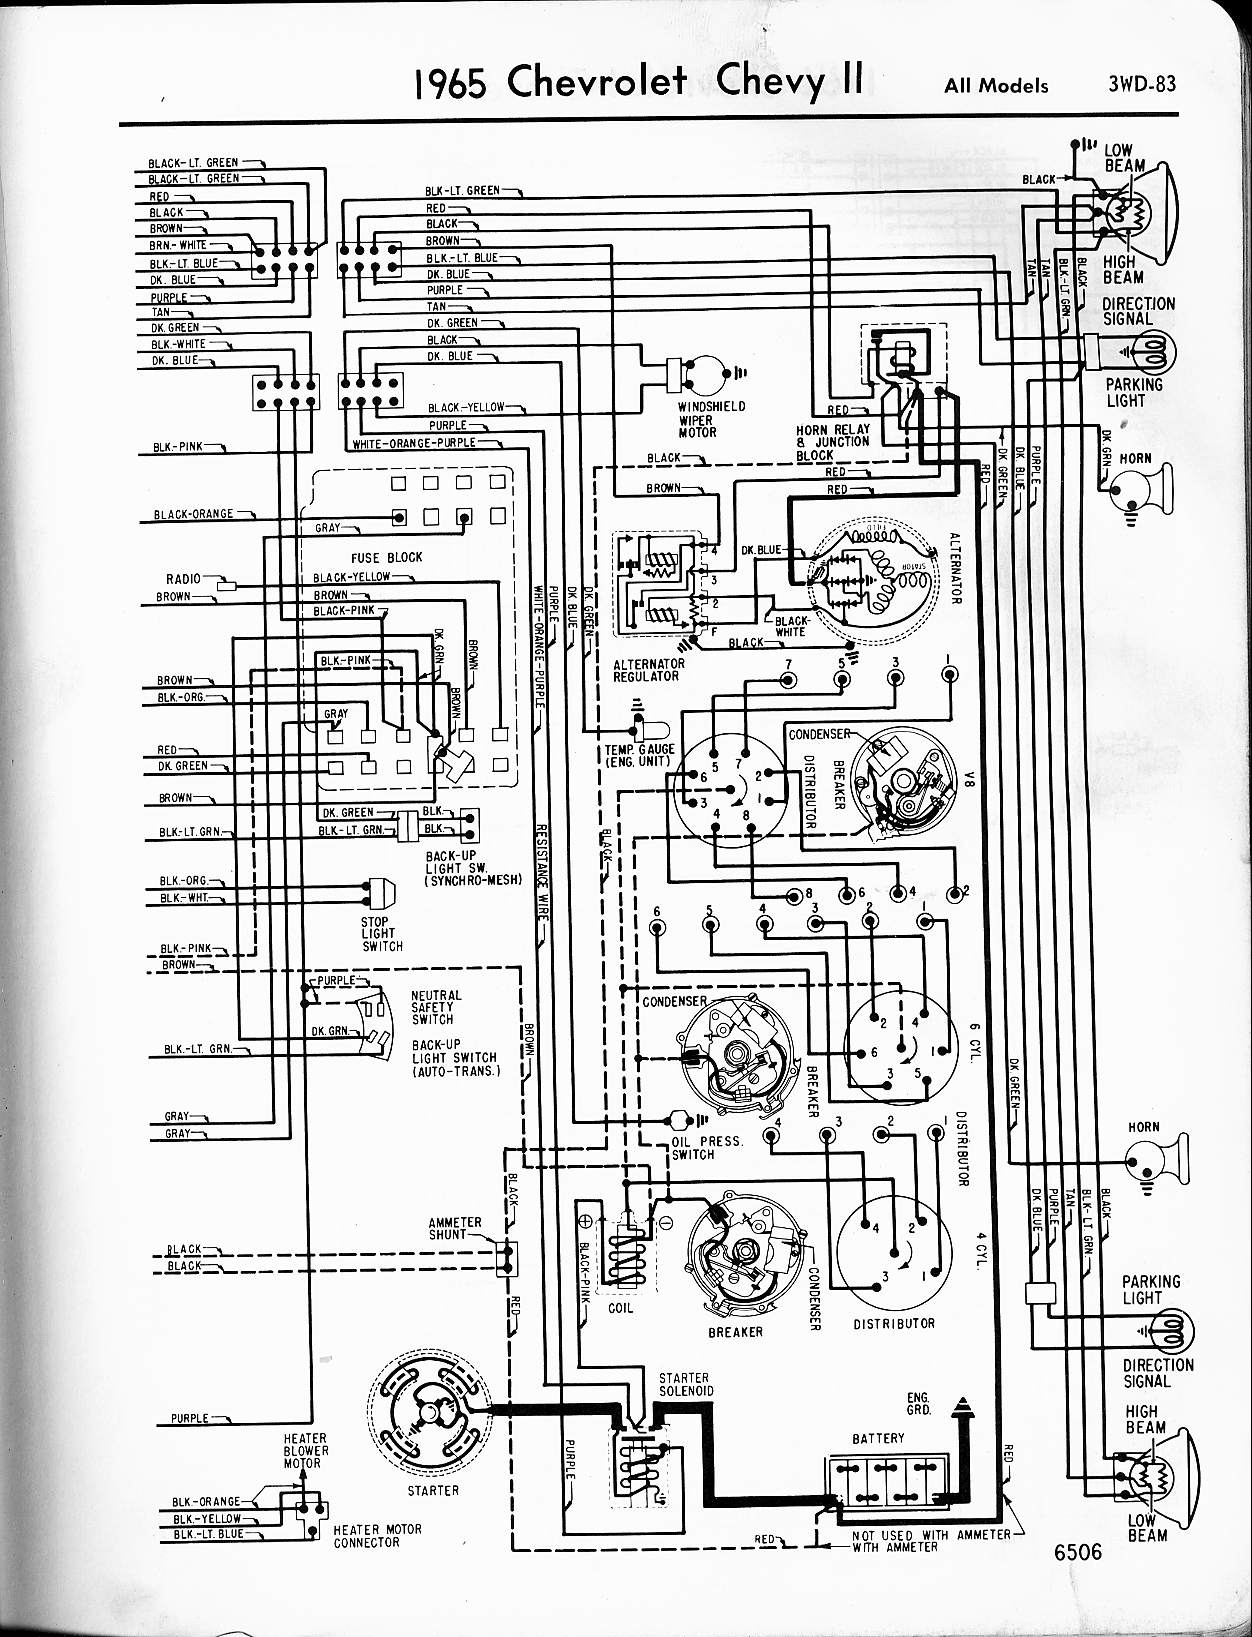 2003 Subaru Outback Wiring Diagram Alarm Data Schema 1998 Forester Fuse Box Heater Core Legacy 2010 Engine Wire